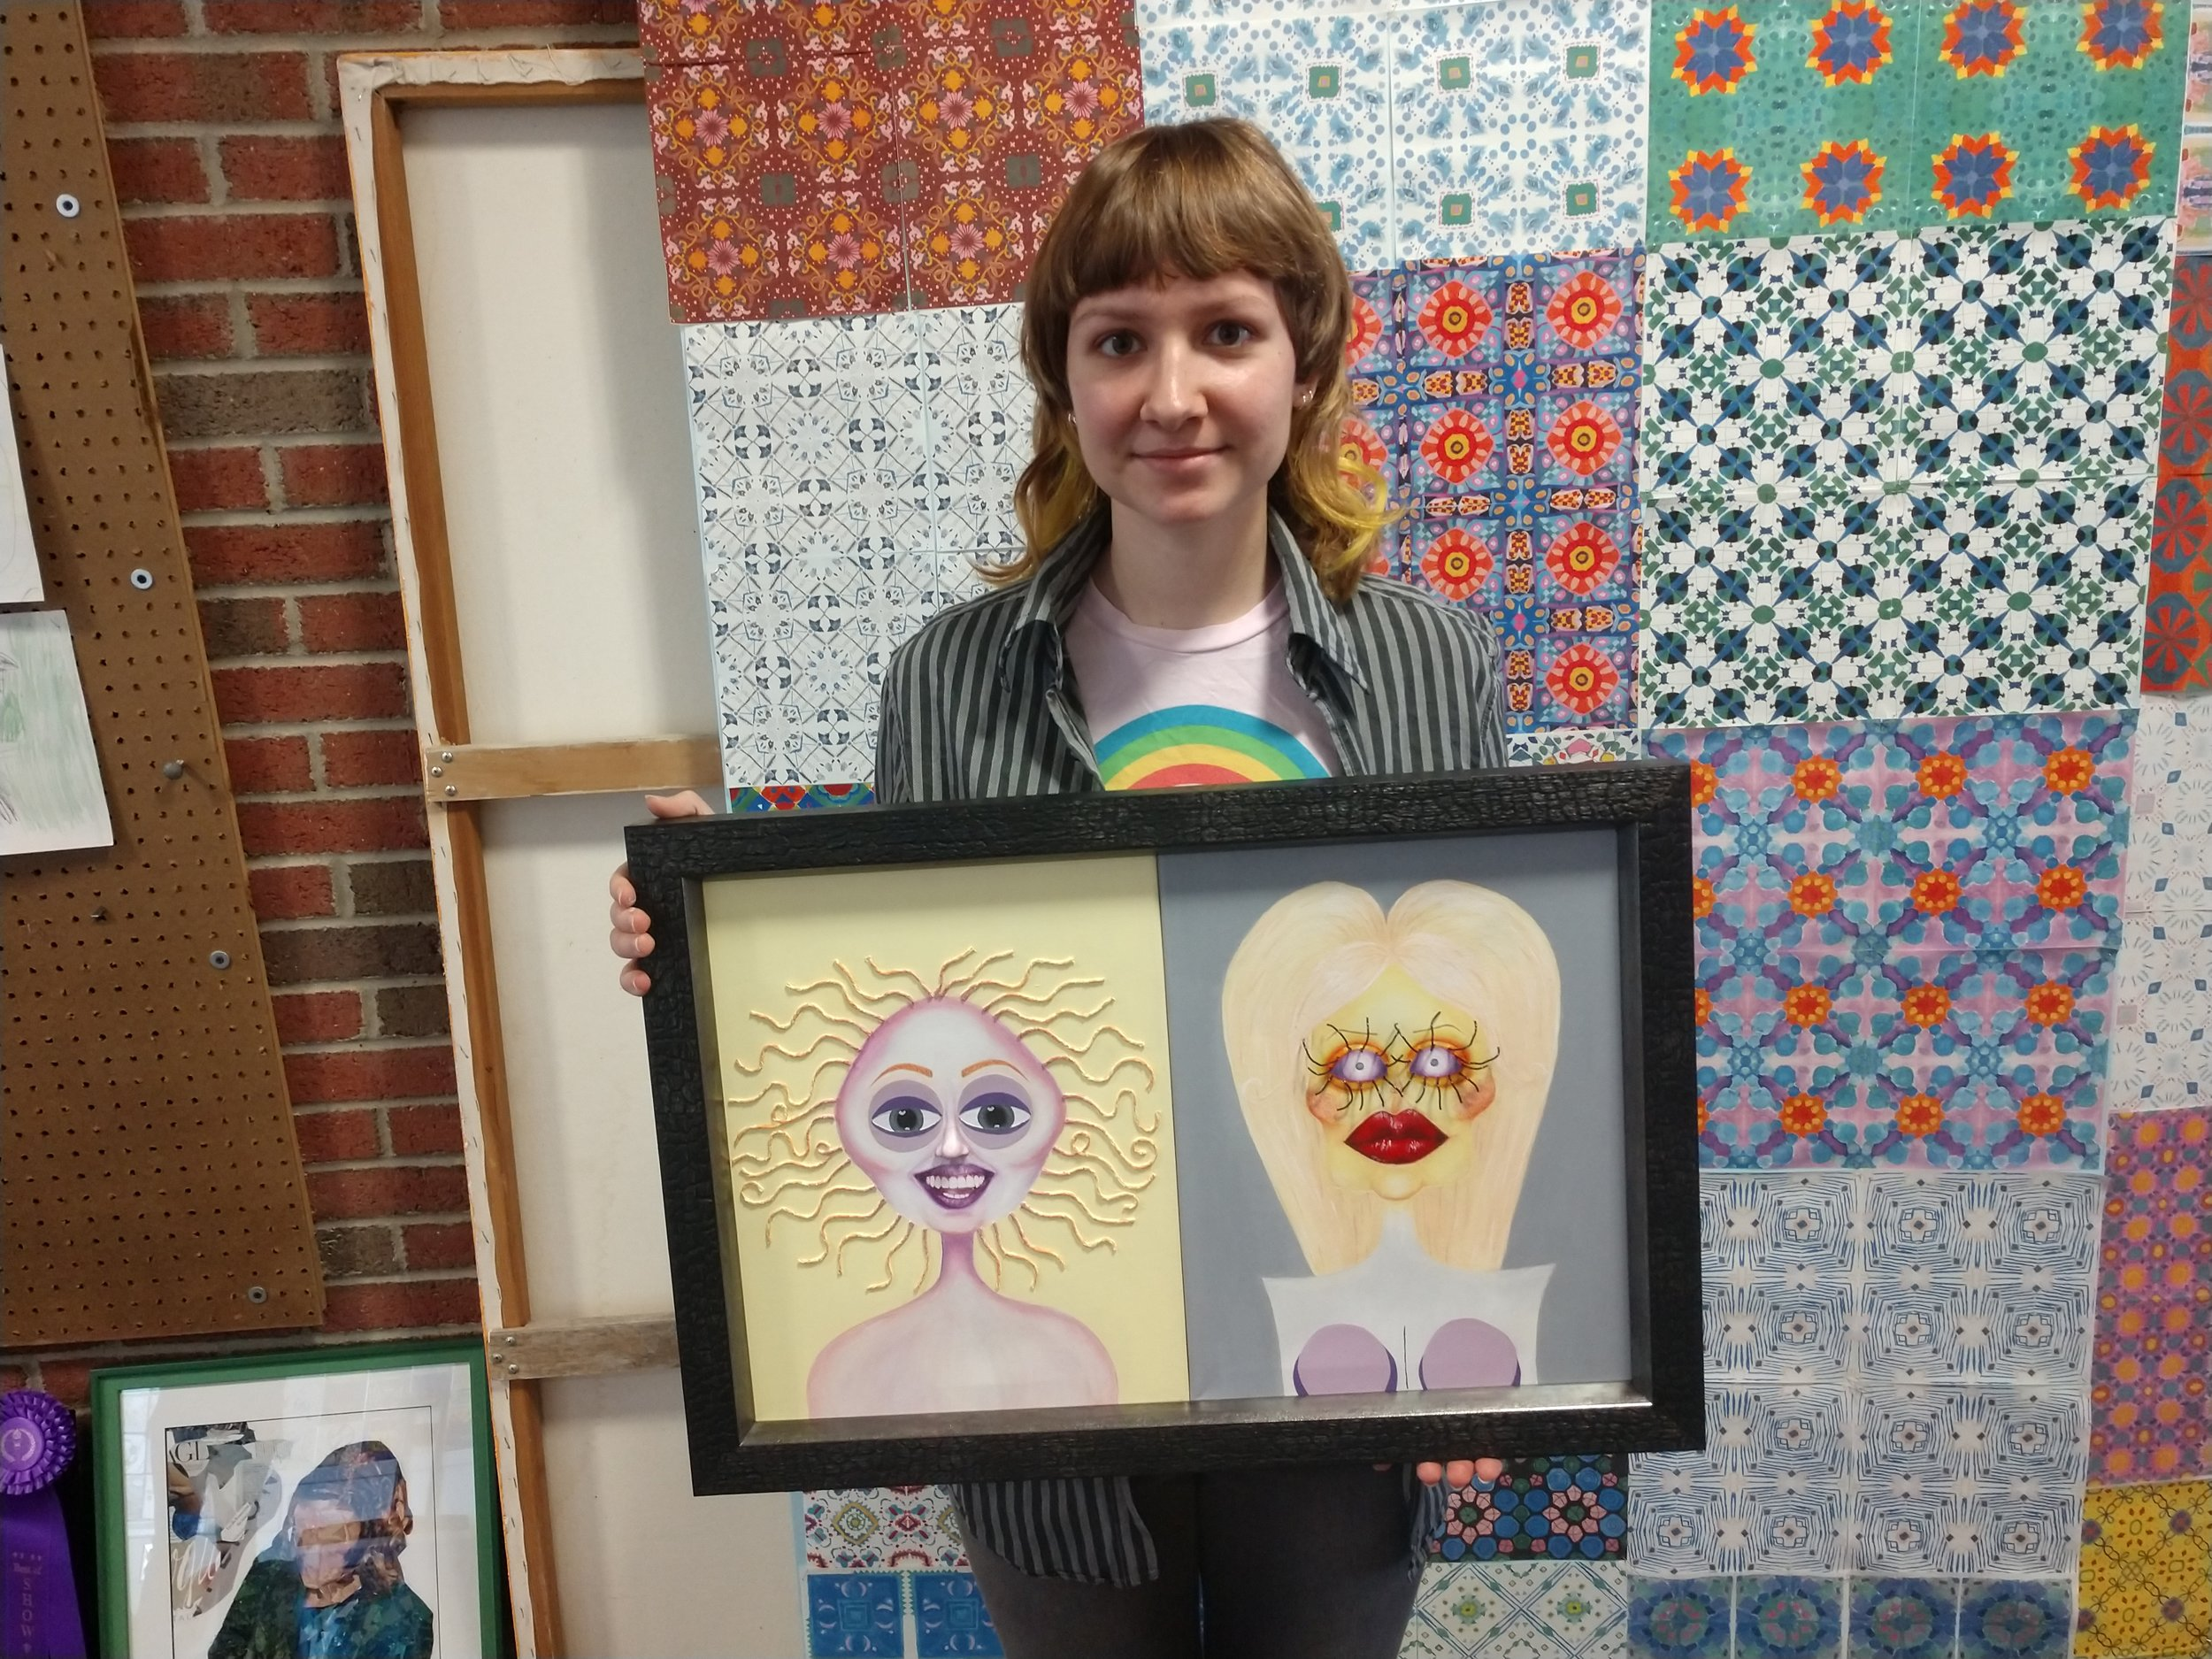 Arendell Parrott Academy's Nastia Hnatov participated in the mixed media portion of the NCASA Scholastic Art Showcase at Northwest Guilford in Greensboro on Saturday. Overall, the team finished first. Photo by Junious Smith III / Neuse News